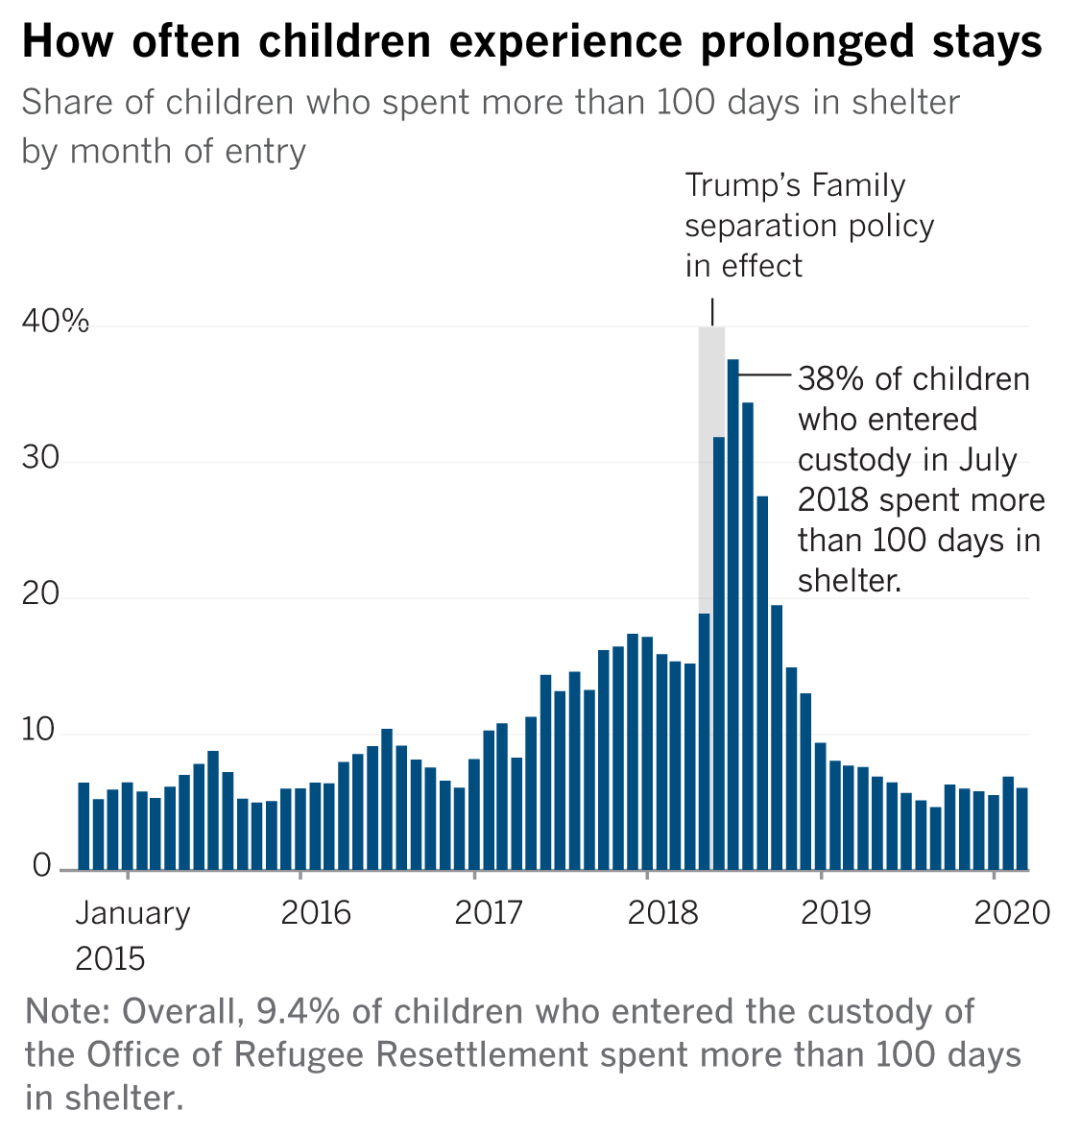 Bar chart shows share of children who spent more than 100 days in shelter by month of entry.